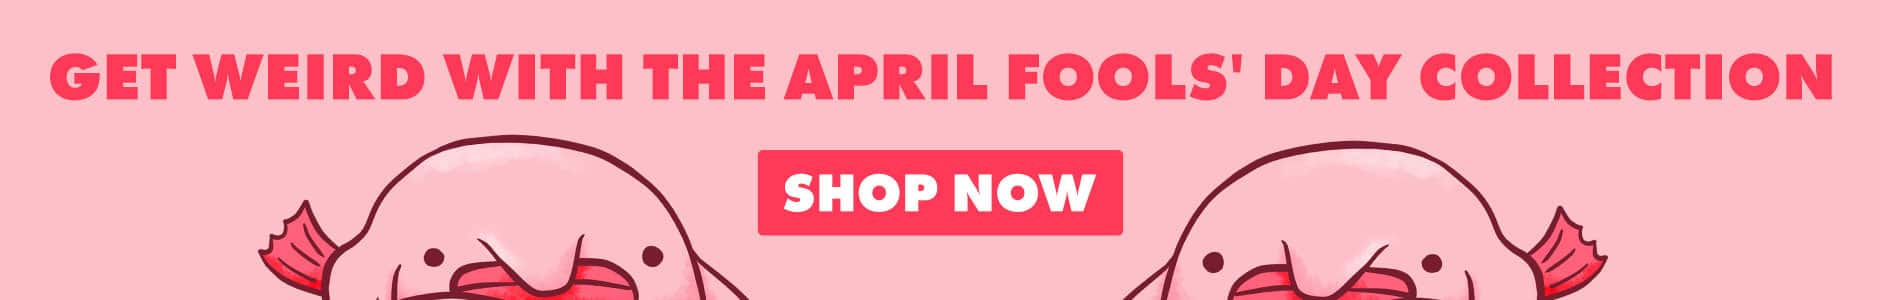 Shop the April Fools' Day Collection